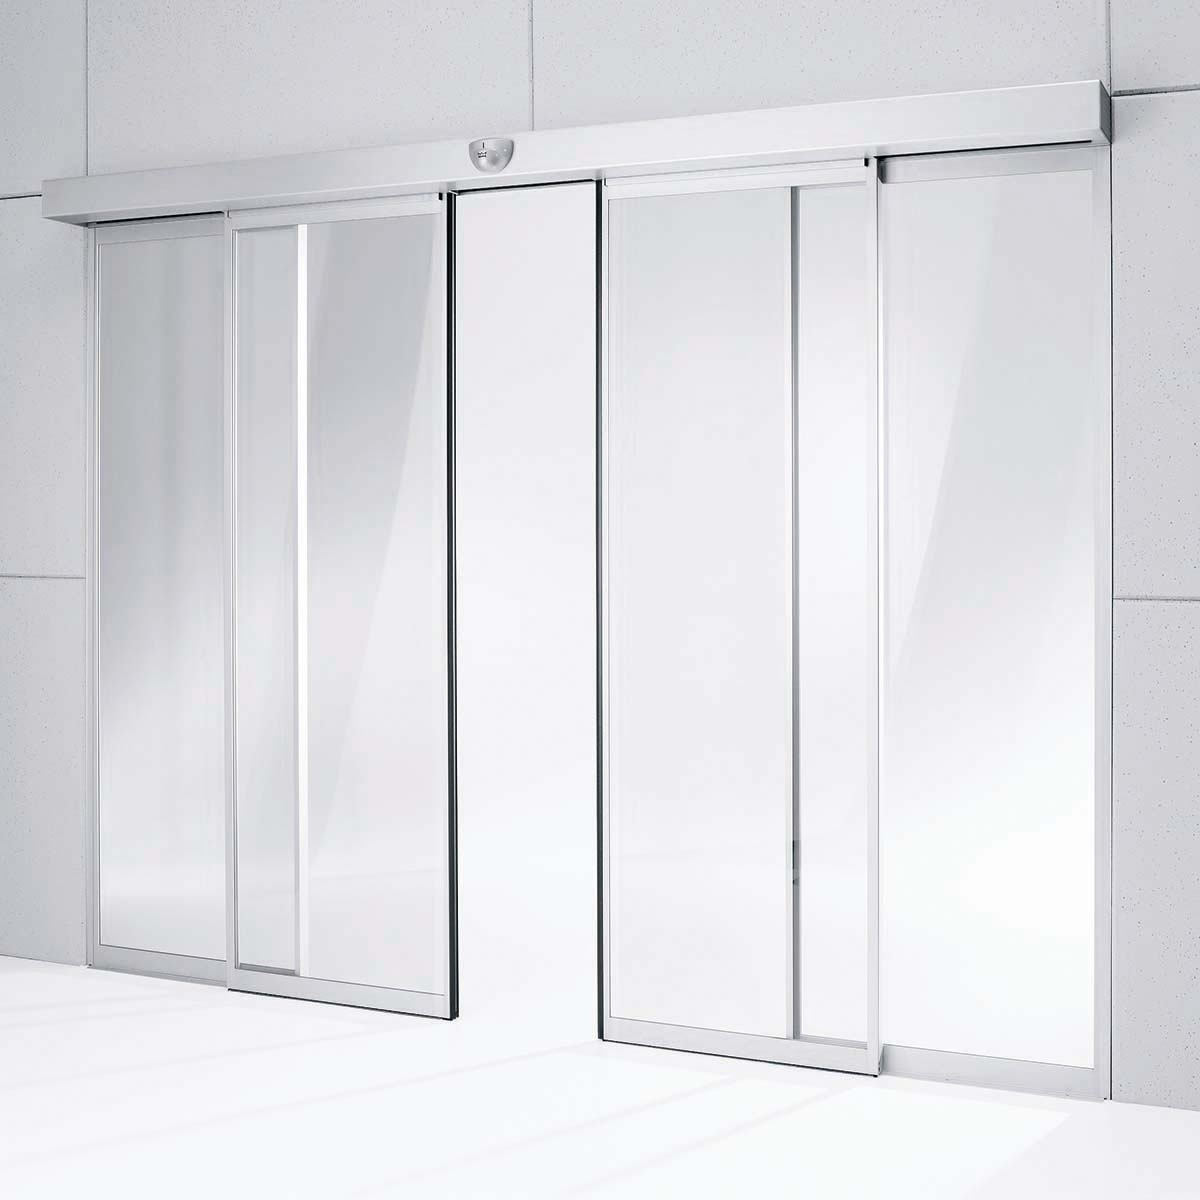 Automatic Sliding Barn Door HardwareAutomatic Sliding Barn Door Hardware